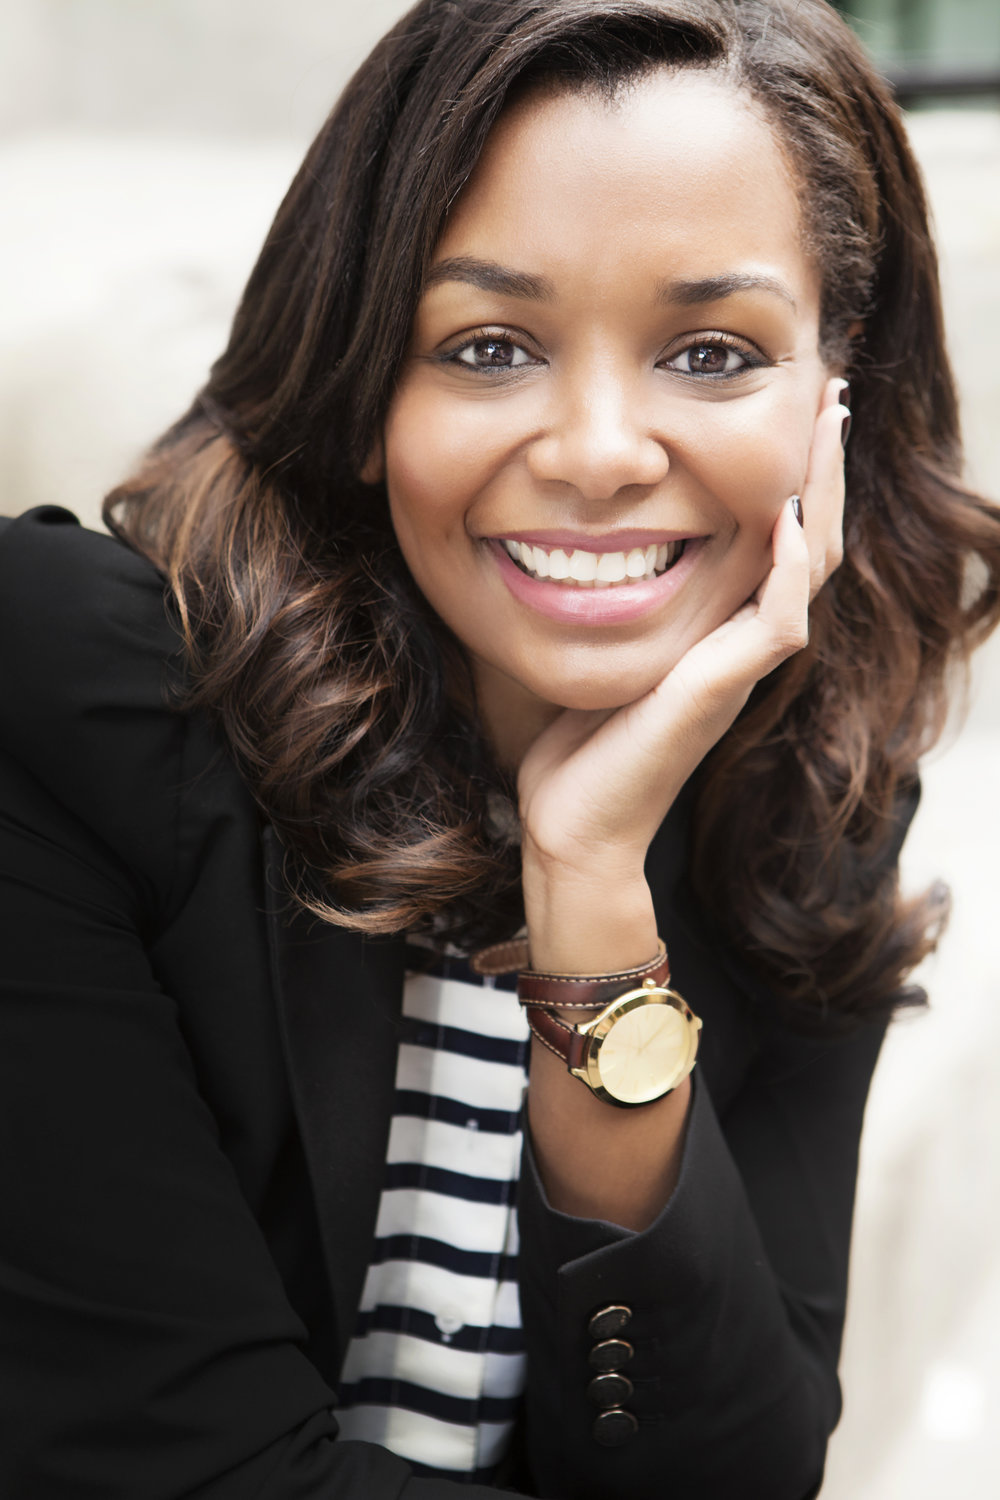 Jihan Thompson  Jihan Thompson is the co-founder and CEO of Swivel Beauty. Prior to launching Swivel Beauty, Jihan spent a decade as a magazine editor at top women's magazines, including  Oprah Magazine ,  Marie Claire , and  Glamour . Now, she's committed to making sure black women have the beauty experience they deserve.